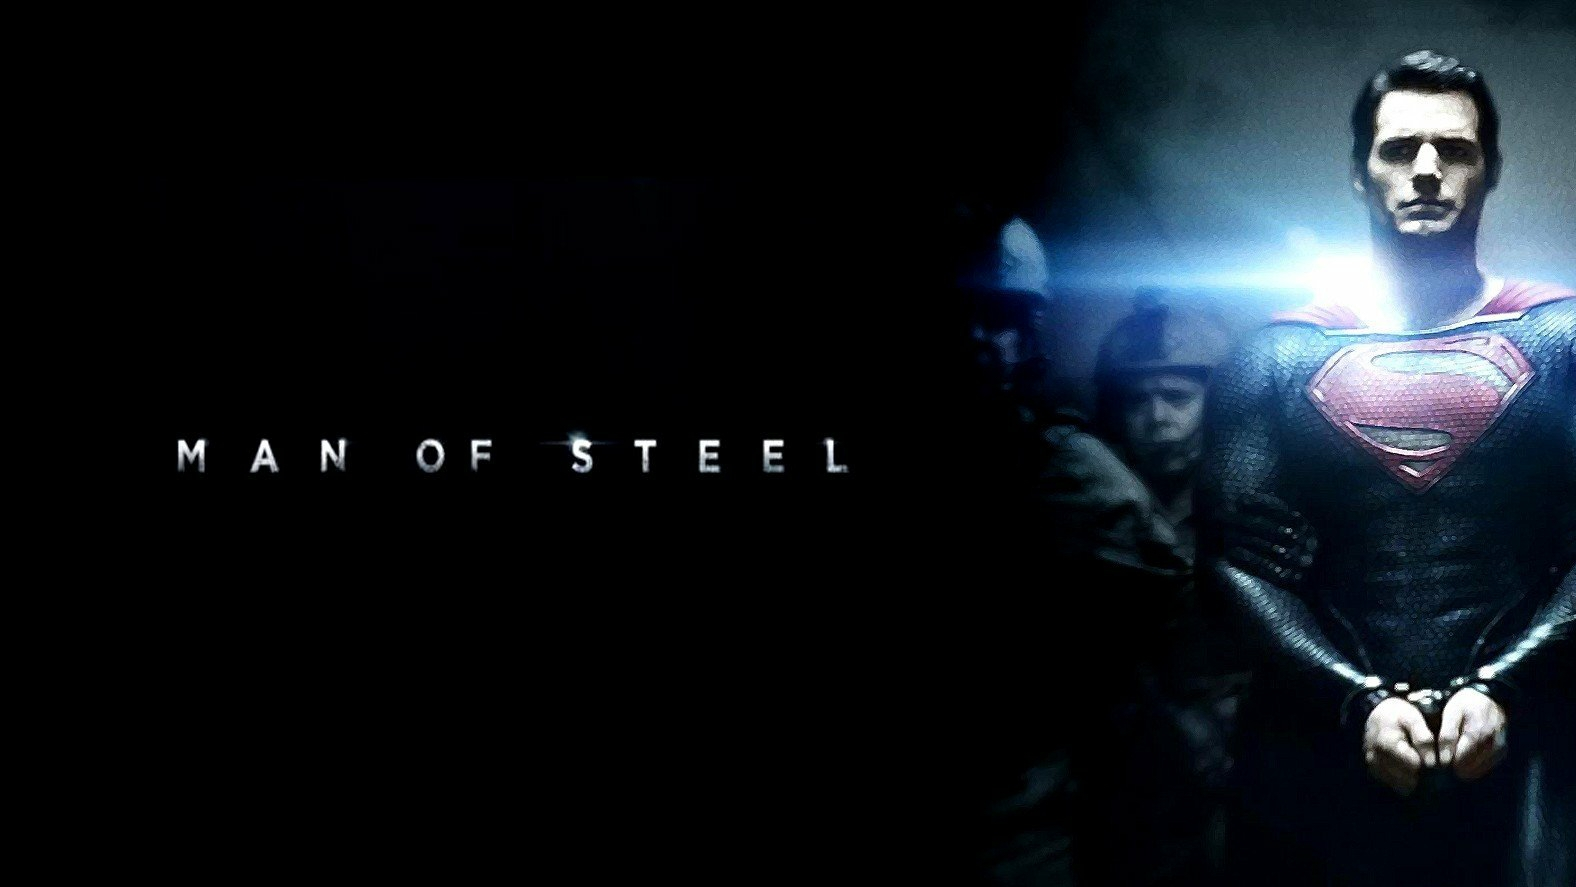 Man Of Steel 1 0 21-24 MOD APK+DATA (UNLIMITED/ALL DEVICES